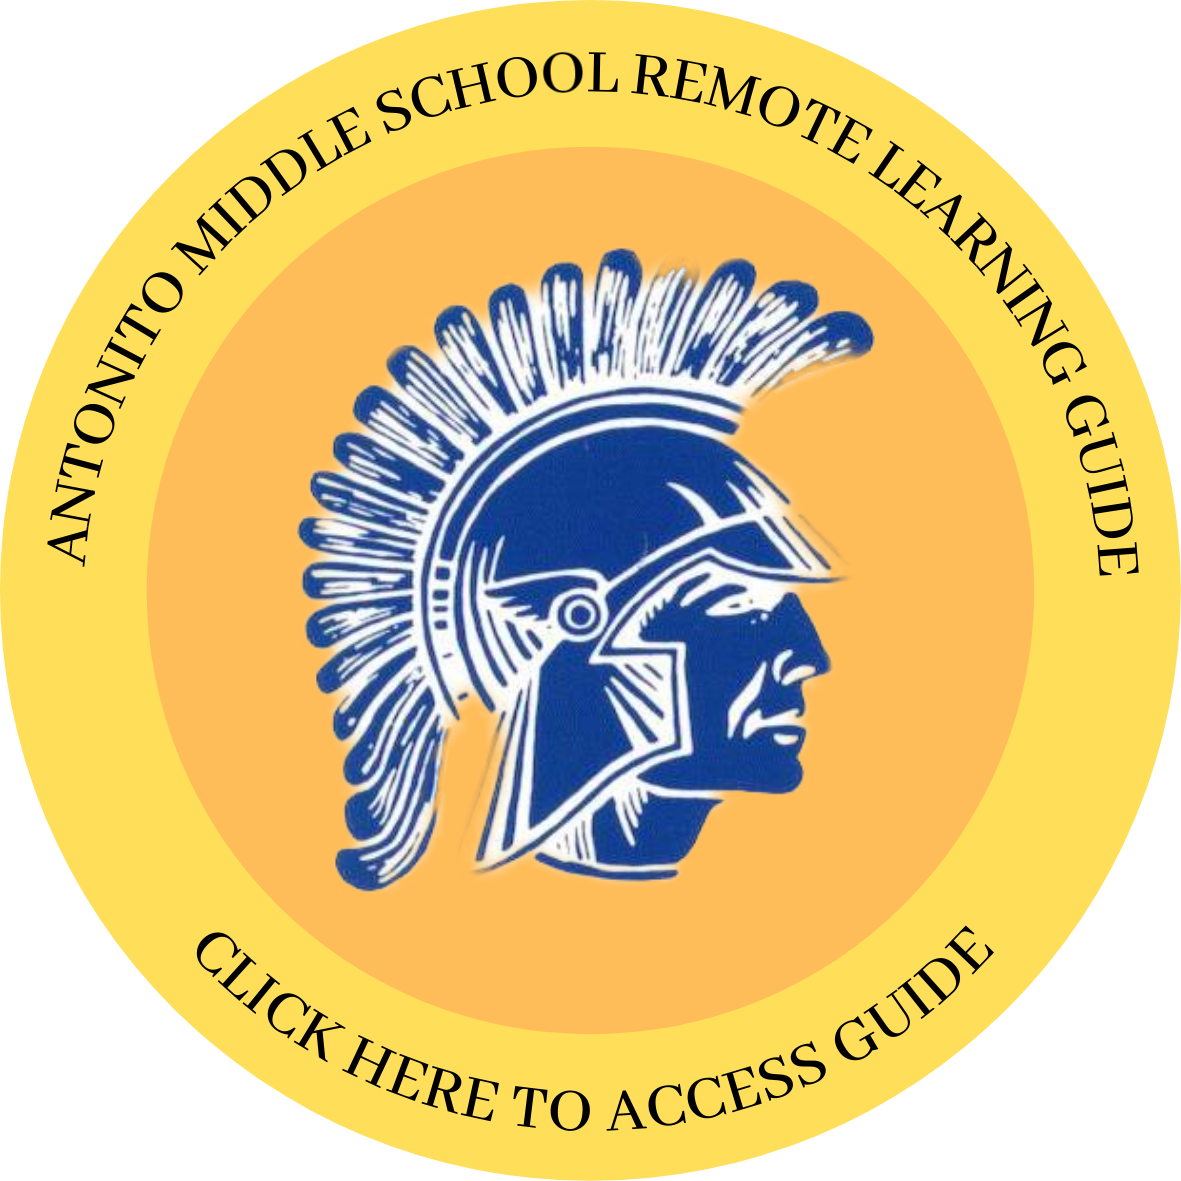 Middle School Remote Learning Guide